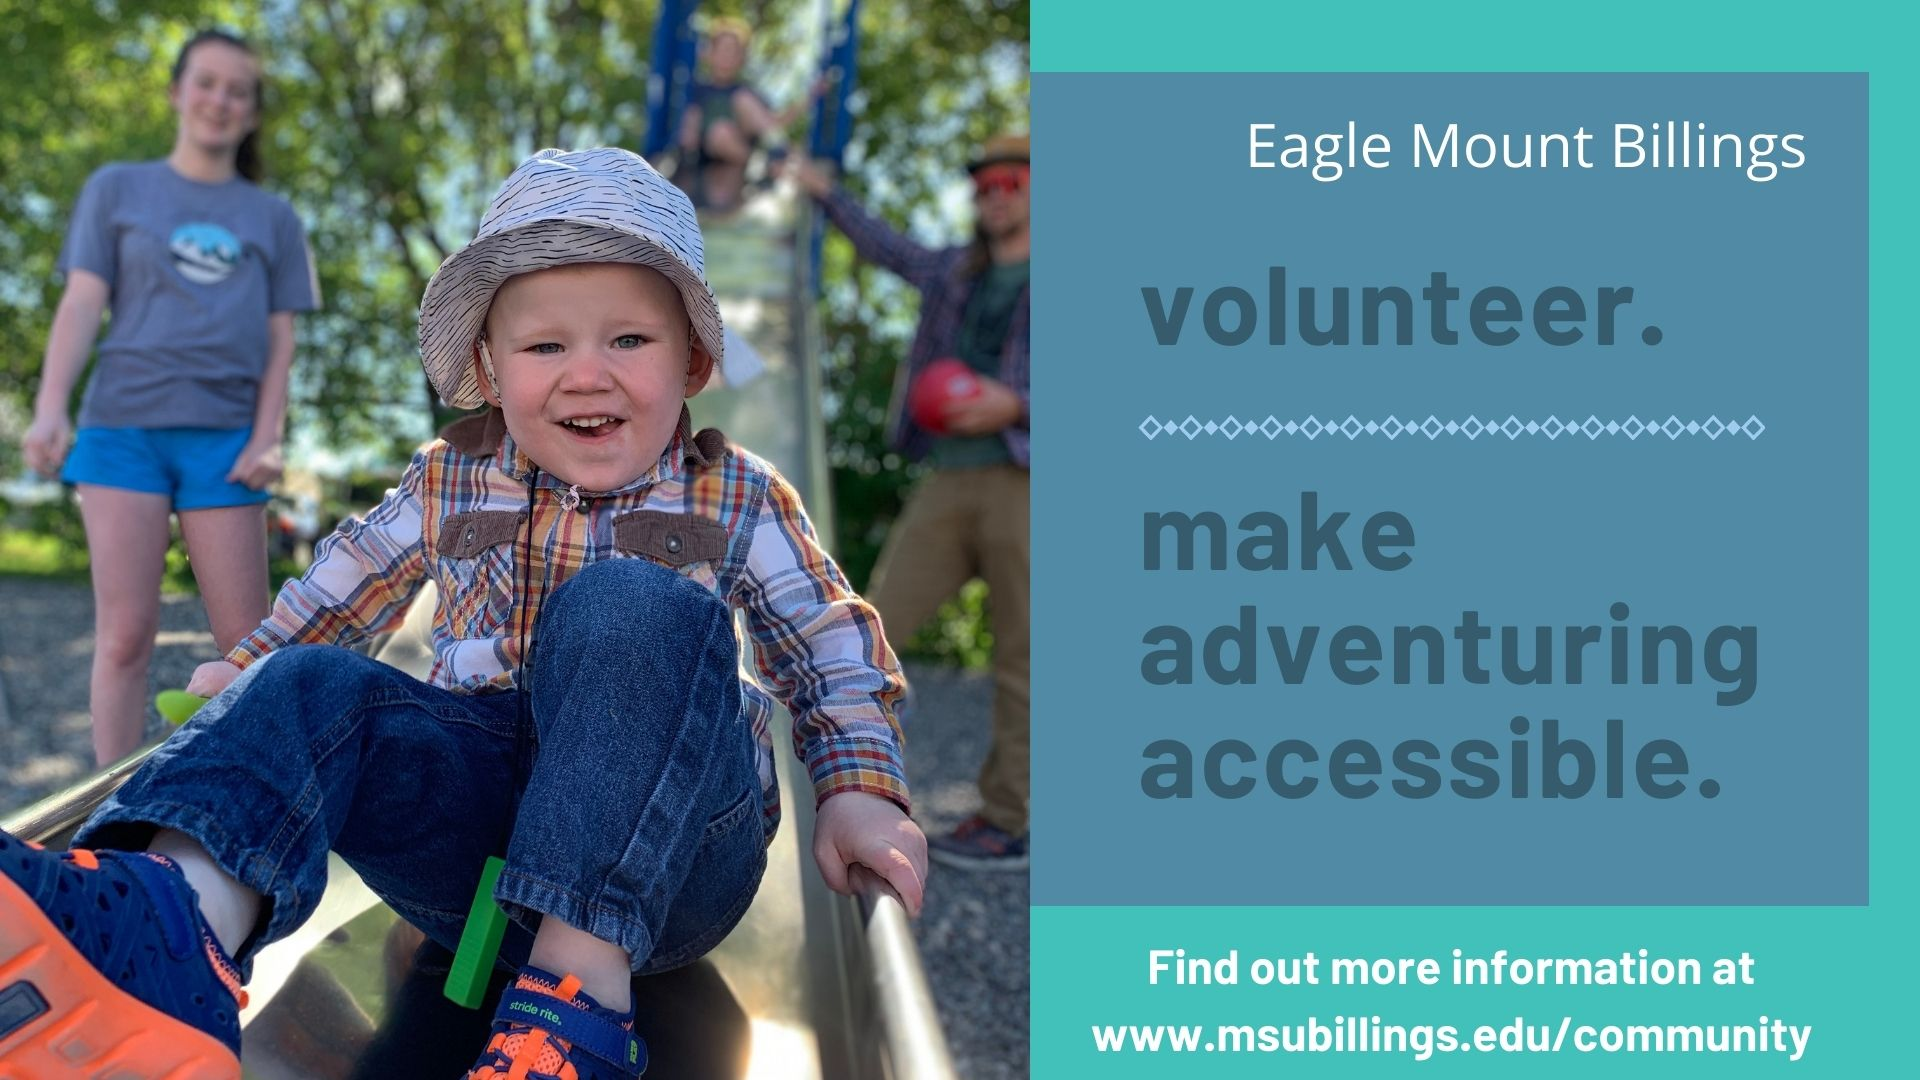 Eagle Mount Billings volunteer make adventuring accessible find out more information at msubillings.edy/community